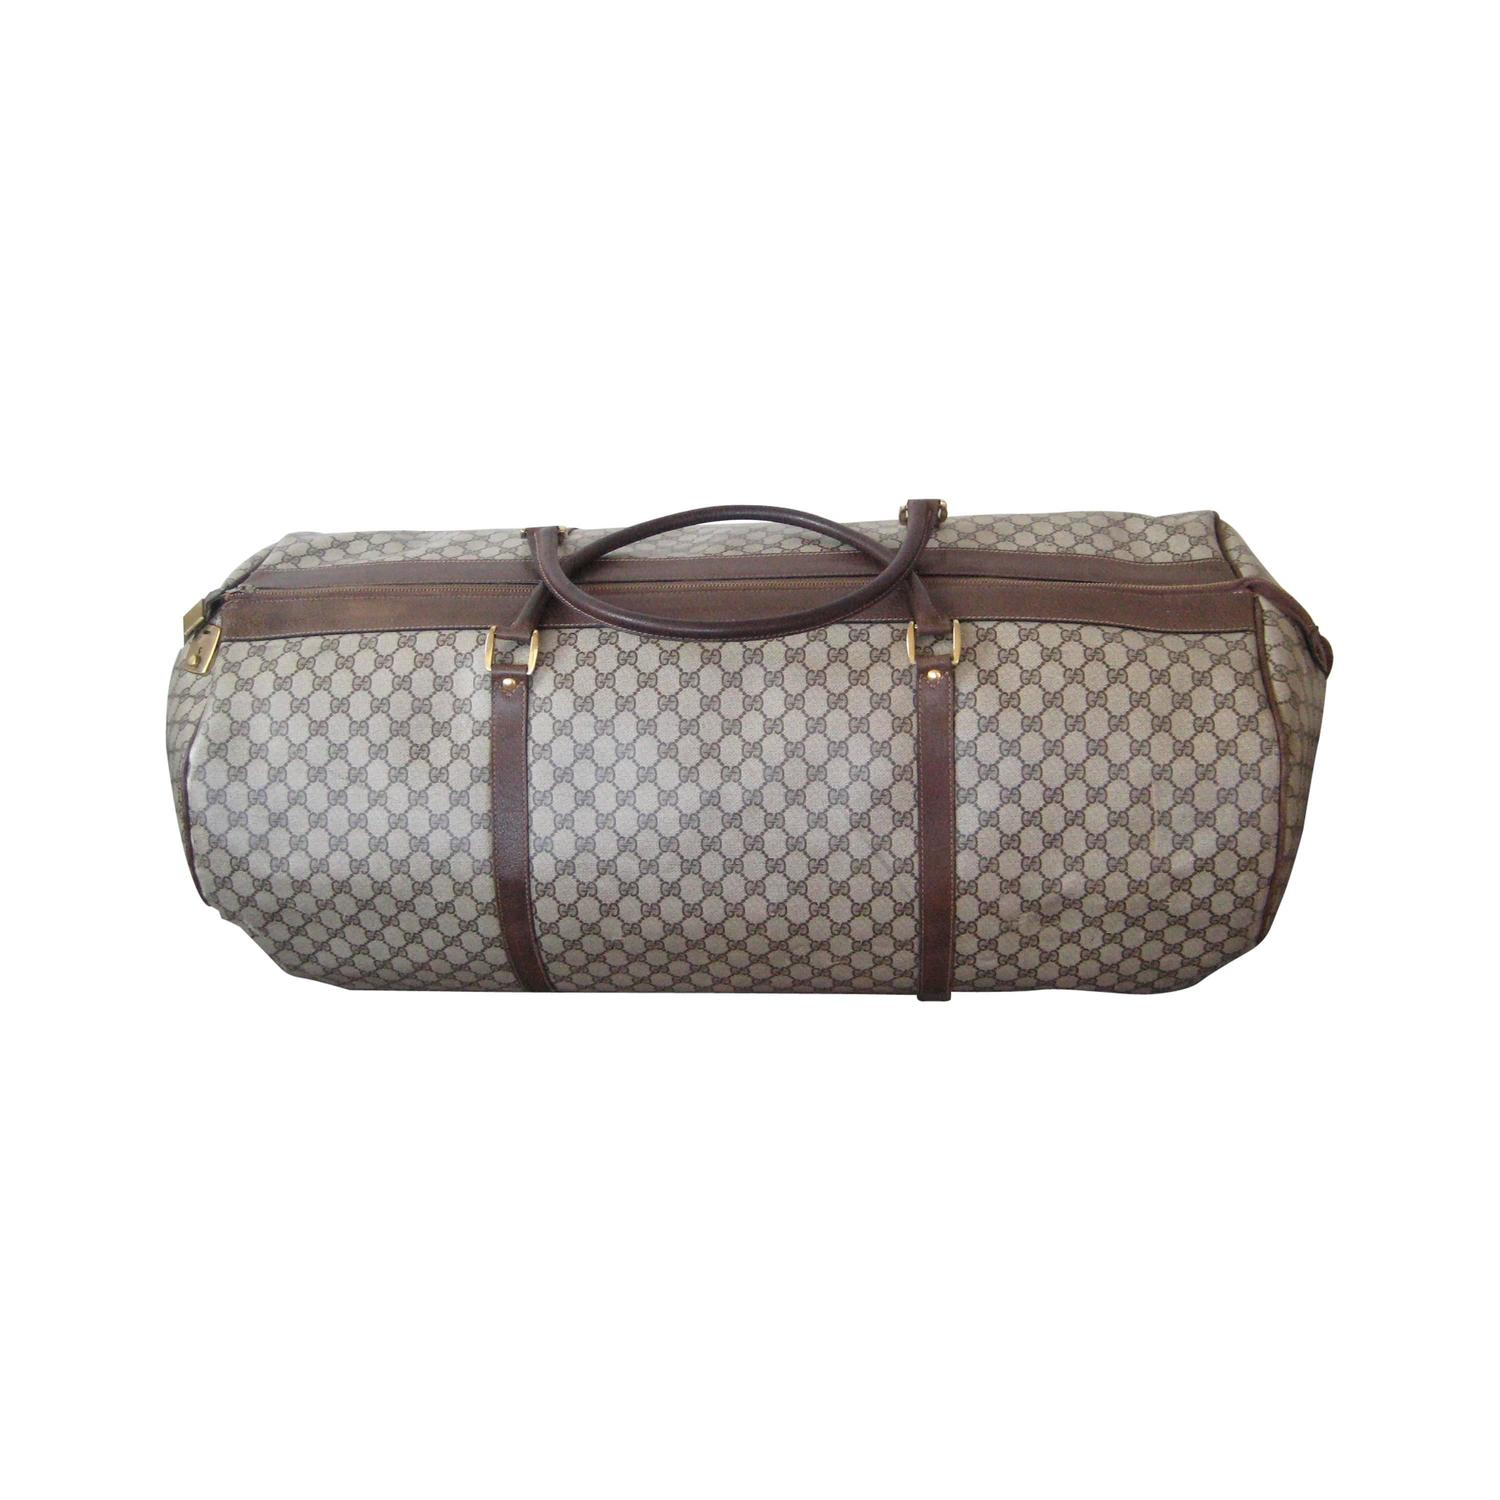 757aa3268fe5 Gucci Duffle Bag Vintage | Stanford Center for Opportunity Policy in ...